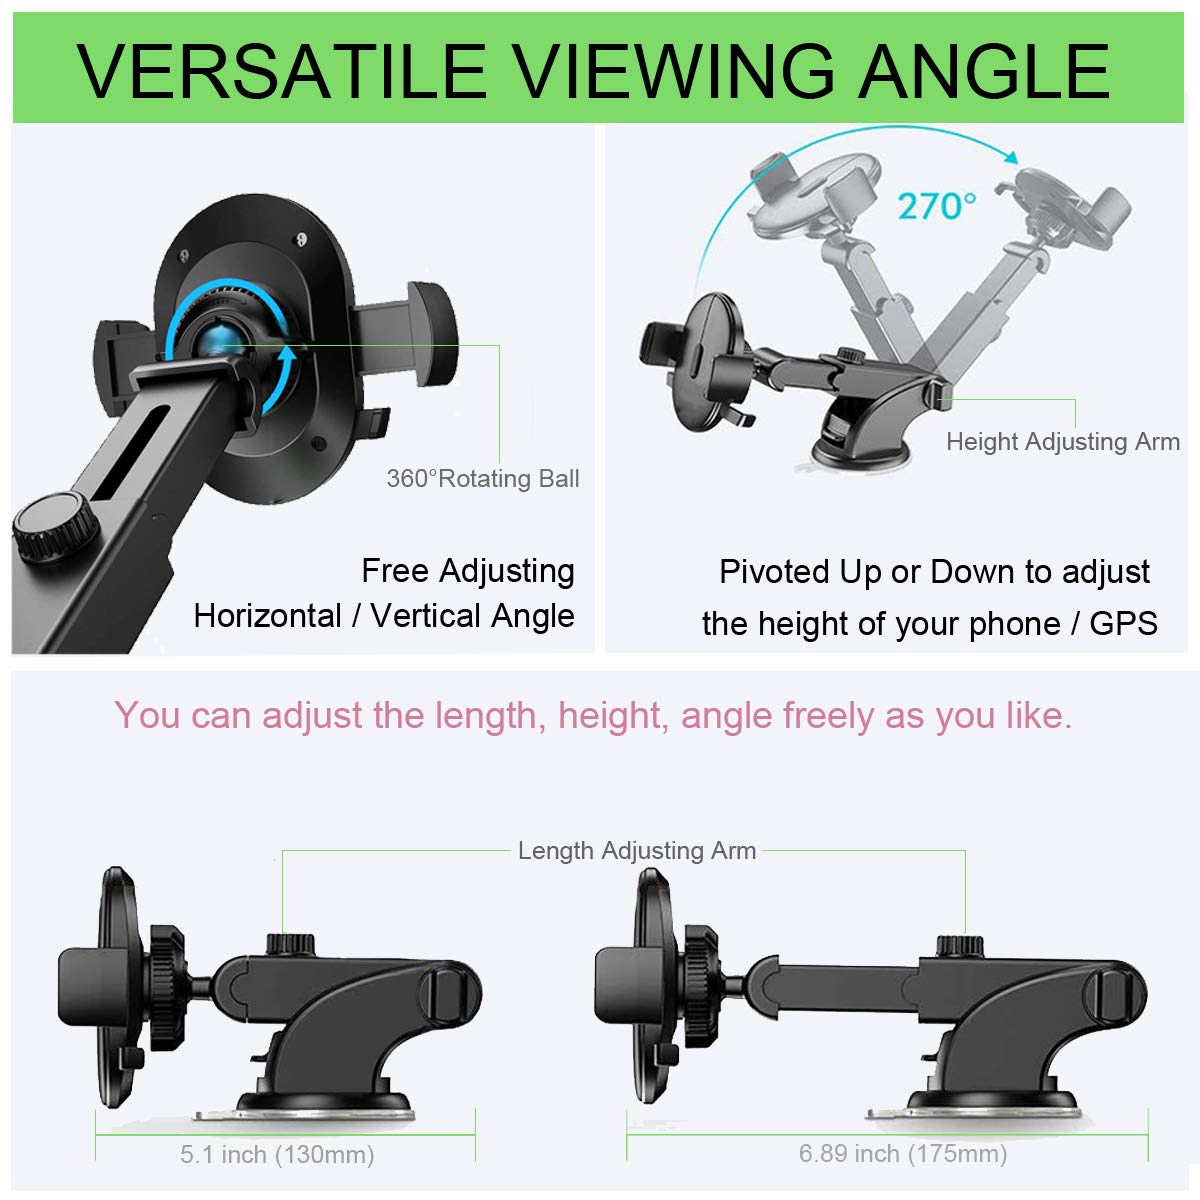 Dashboard Windshield Stand 360/° Rotation Stretchable One Touch Car Phone Mount Compatible for iPhone 8 Plus X XR XS MAX 7 6s Samsung S10 S8 S9 Plus S7 Note 9 8 LG G5 G6 Nexus 5X Phone Holder for Car